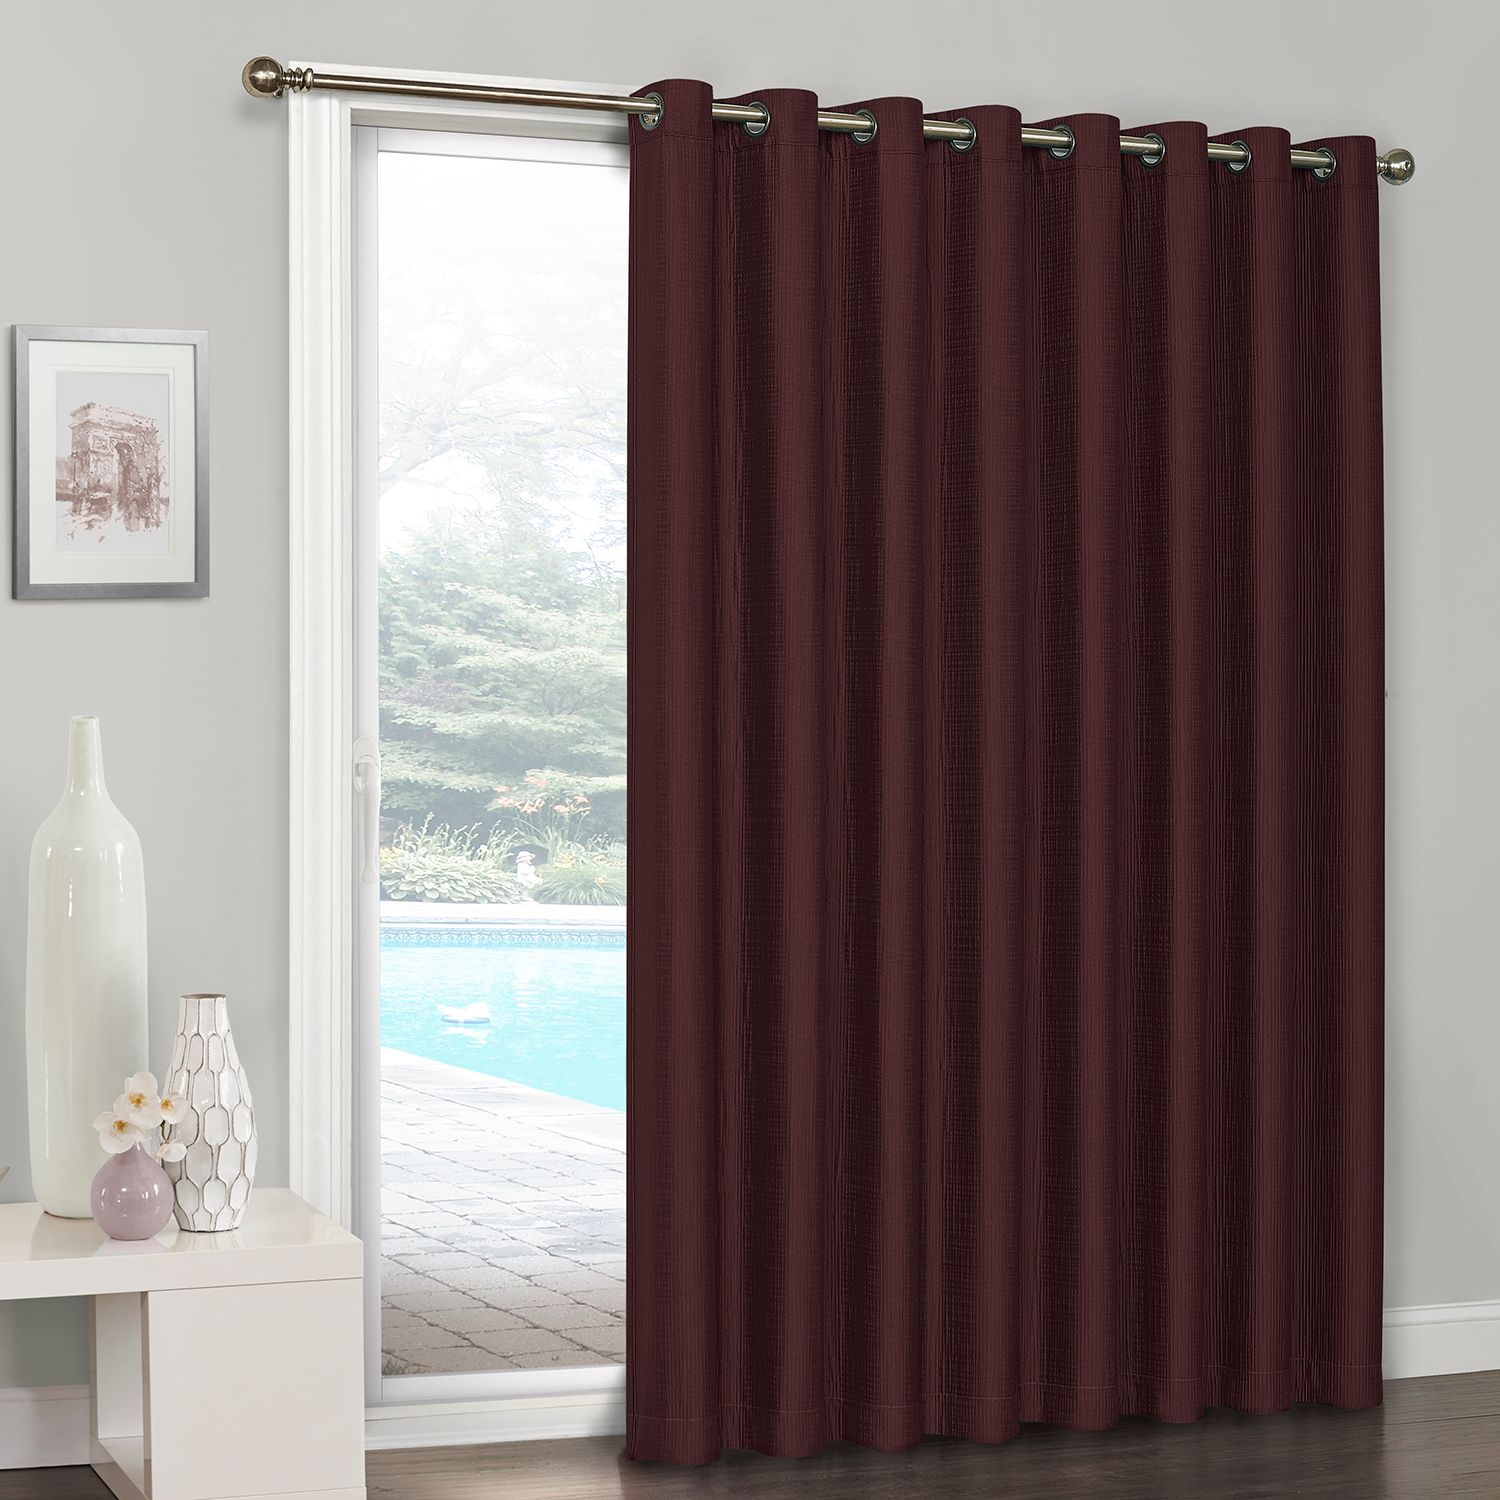 Great Eclipse Clara Blackout Patio Door Curtain